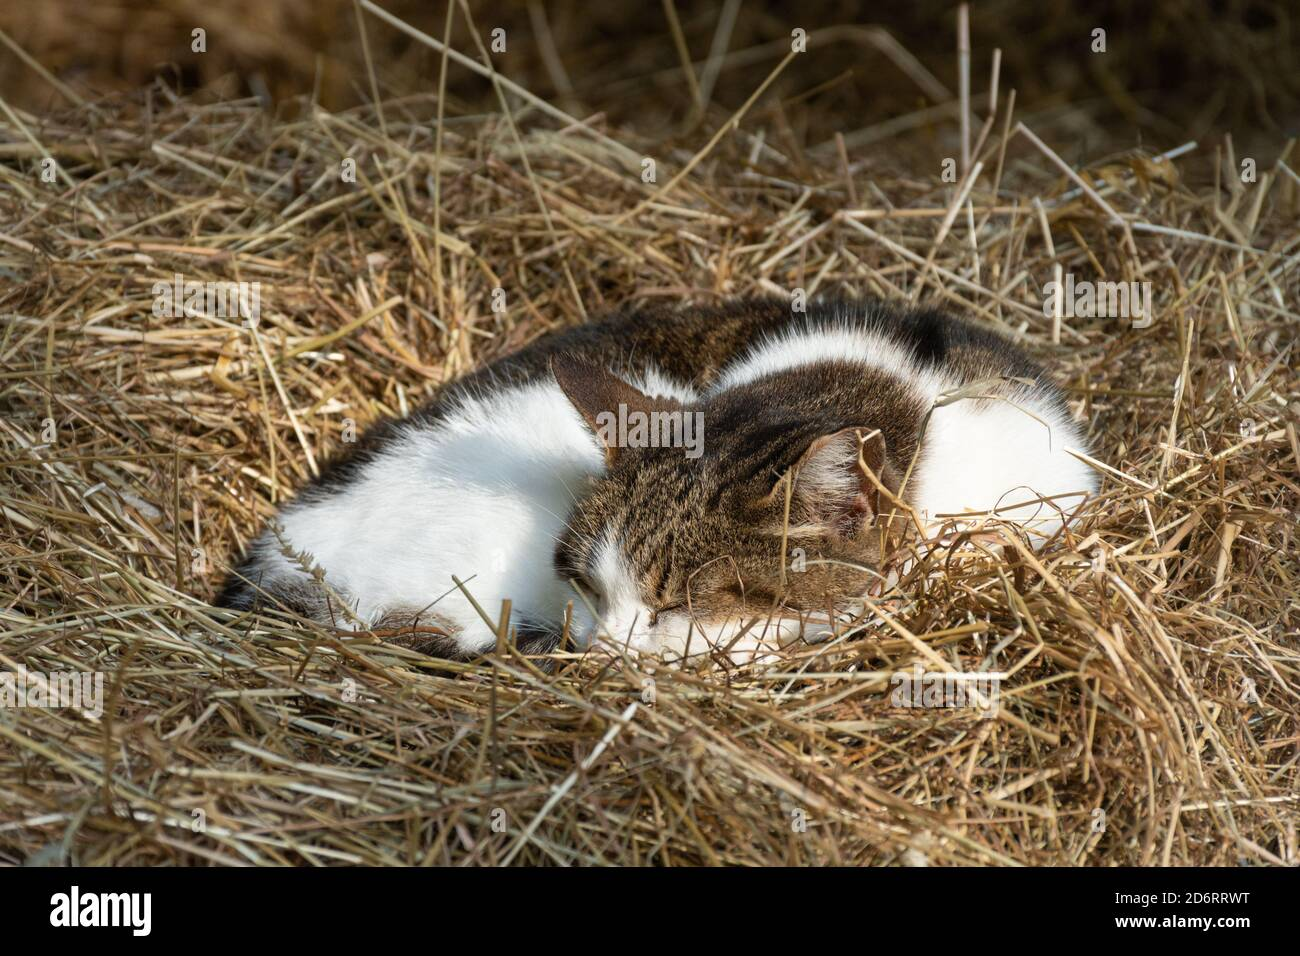 Cute cat sleeping on a bed of straw Stock Photo